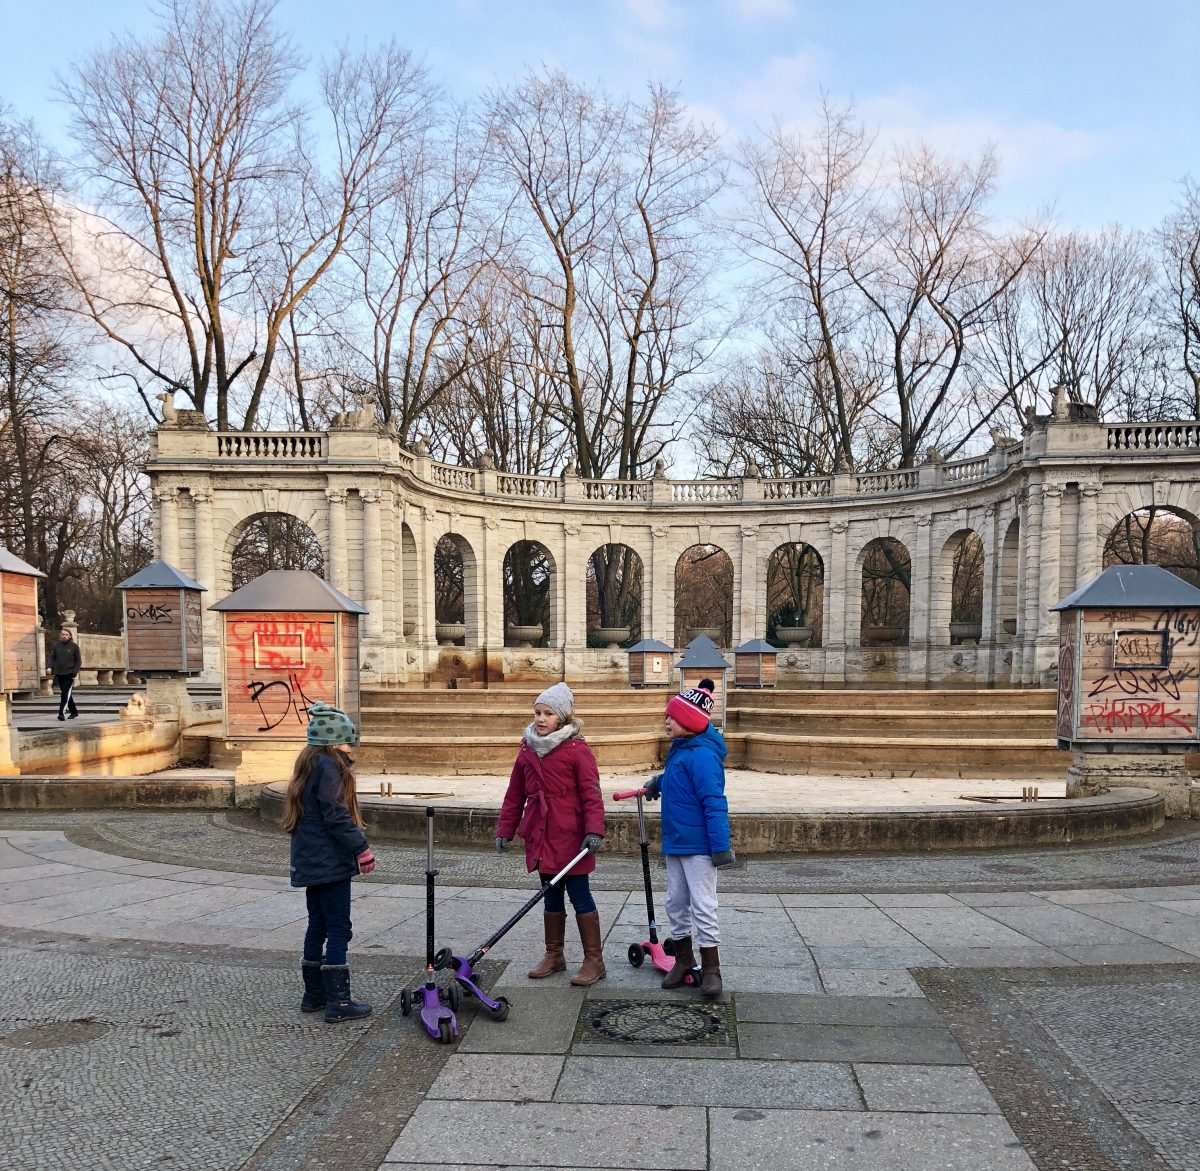 Märchenbrunnen in Berlin | berlinmittemom.com